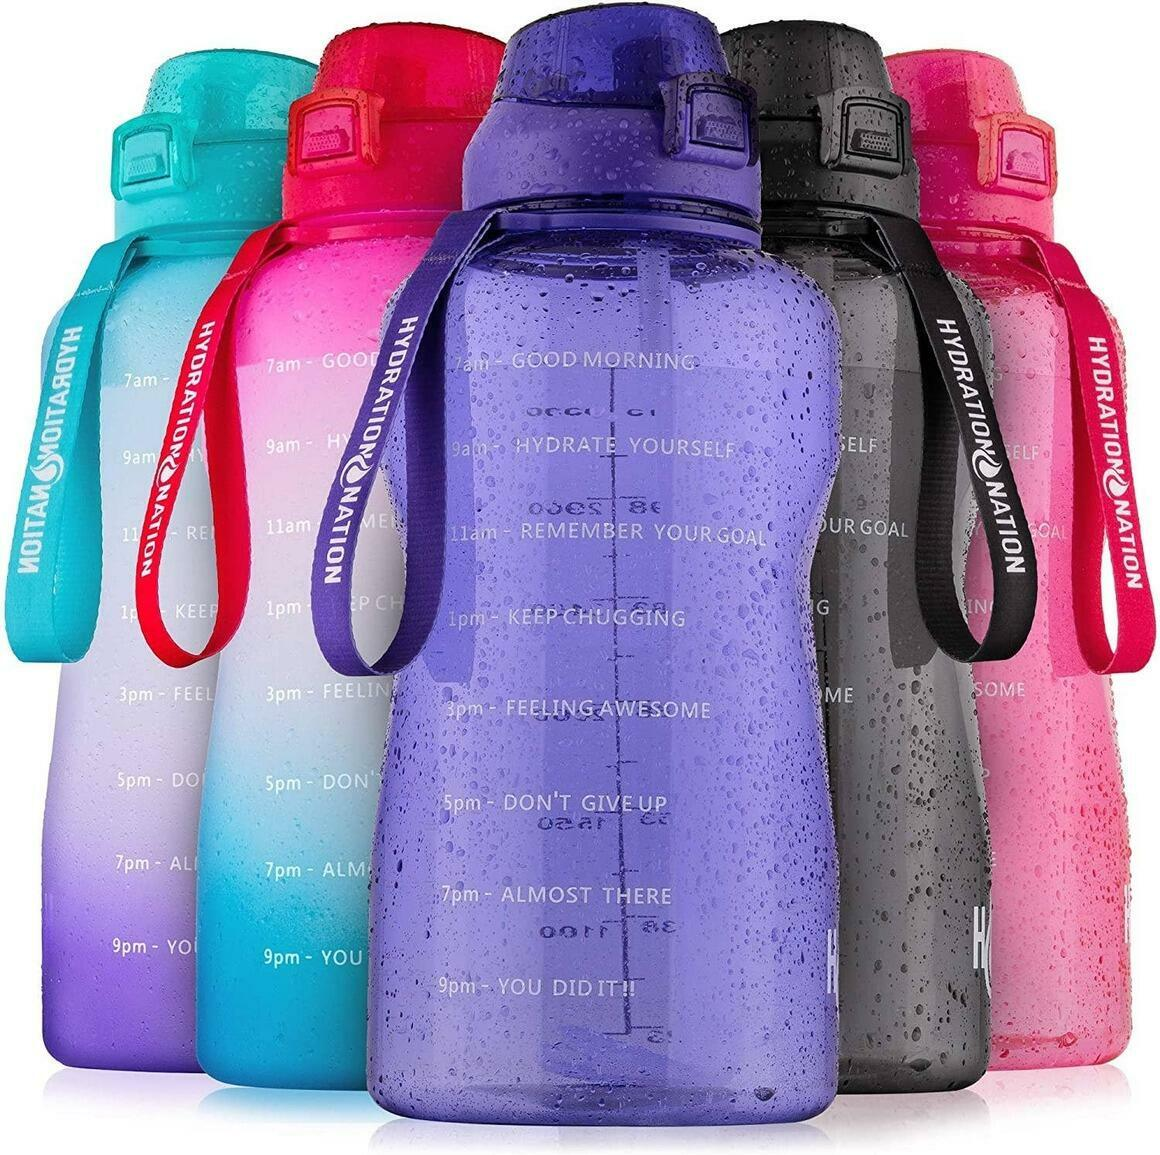 1 Gallon Water Bottle With Straw & Time Marker Quotes | Trada Marketplace